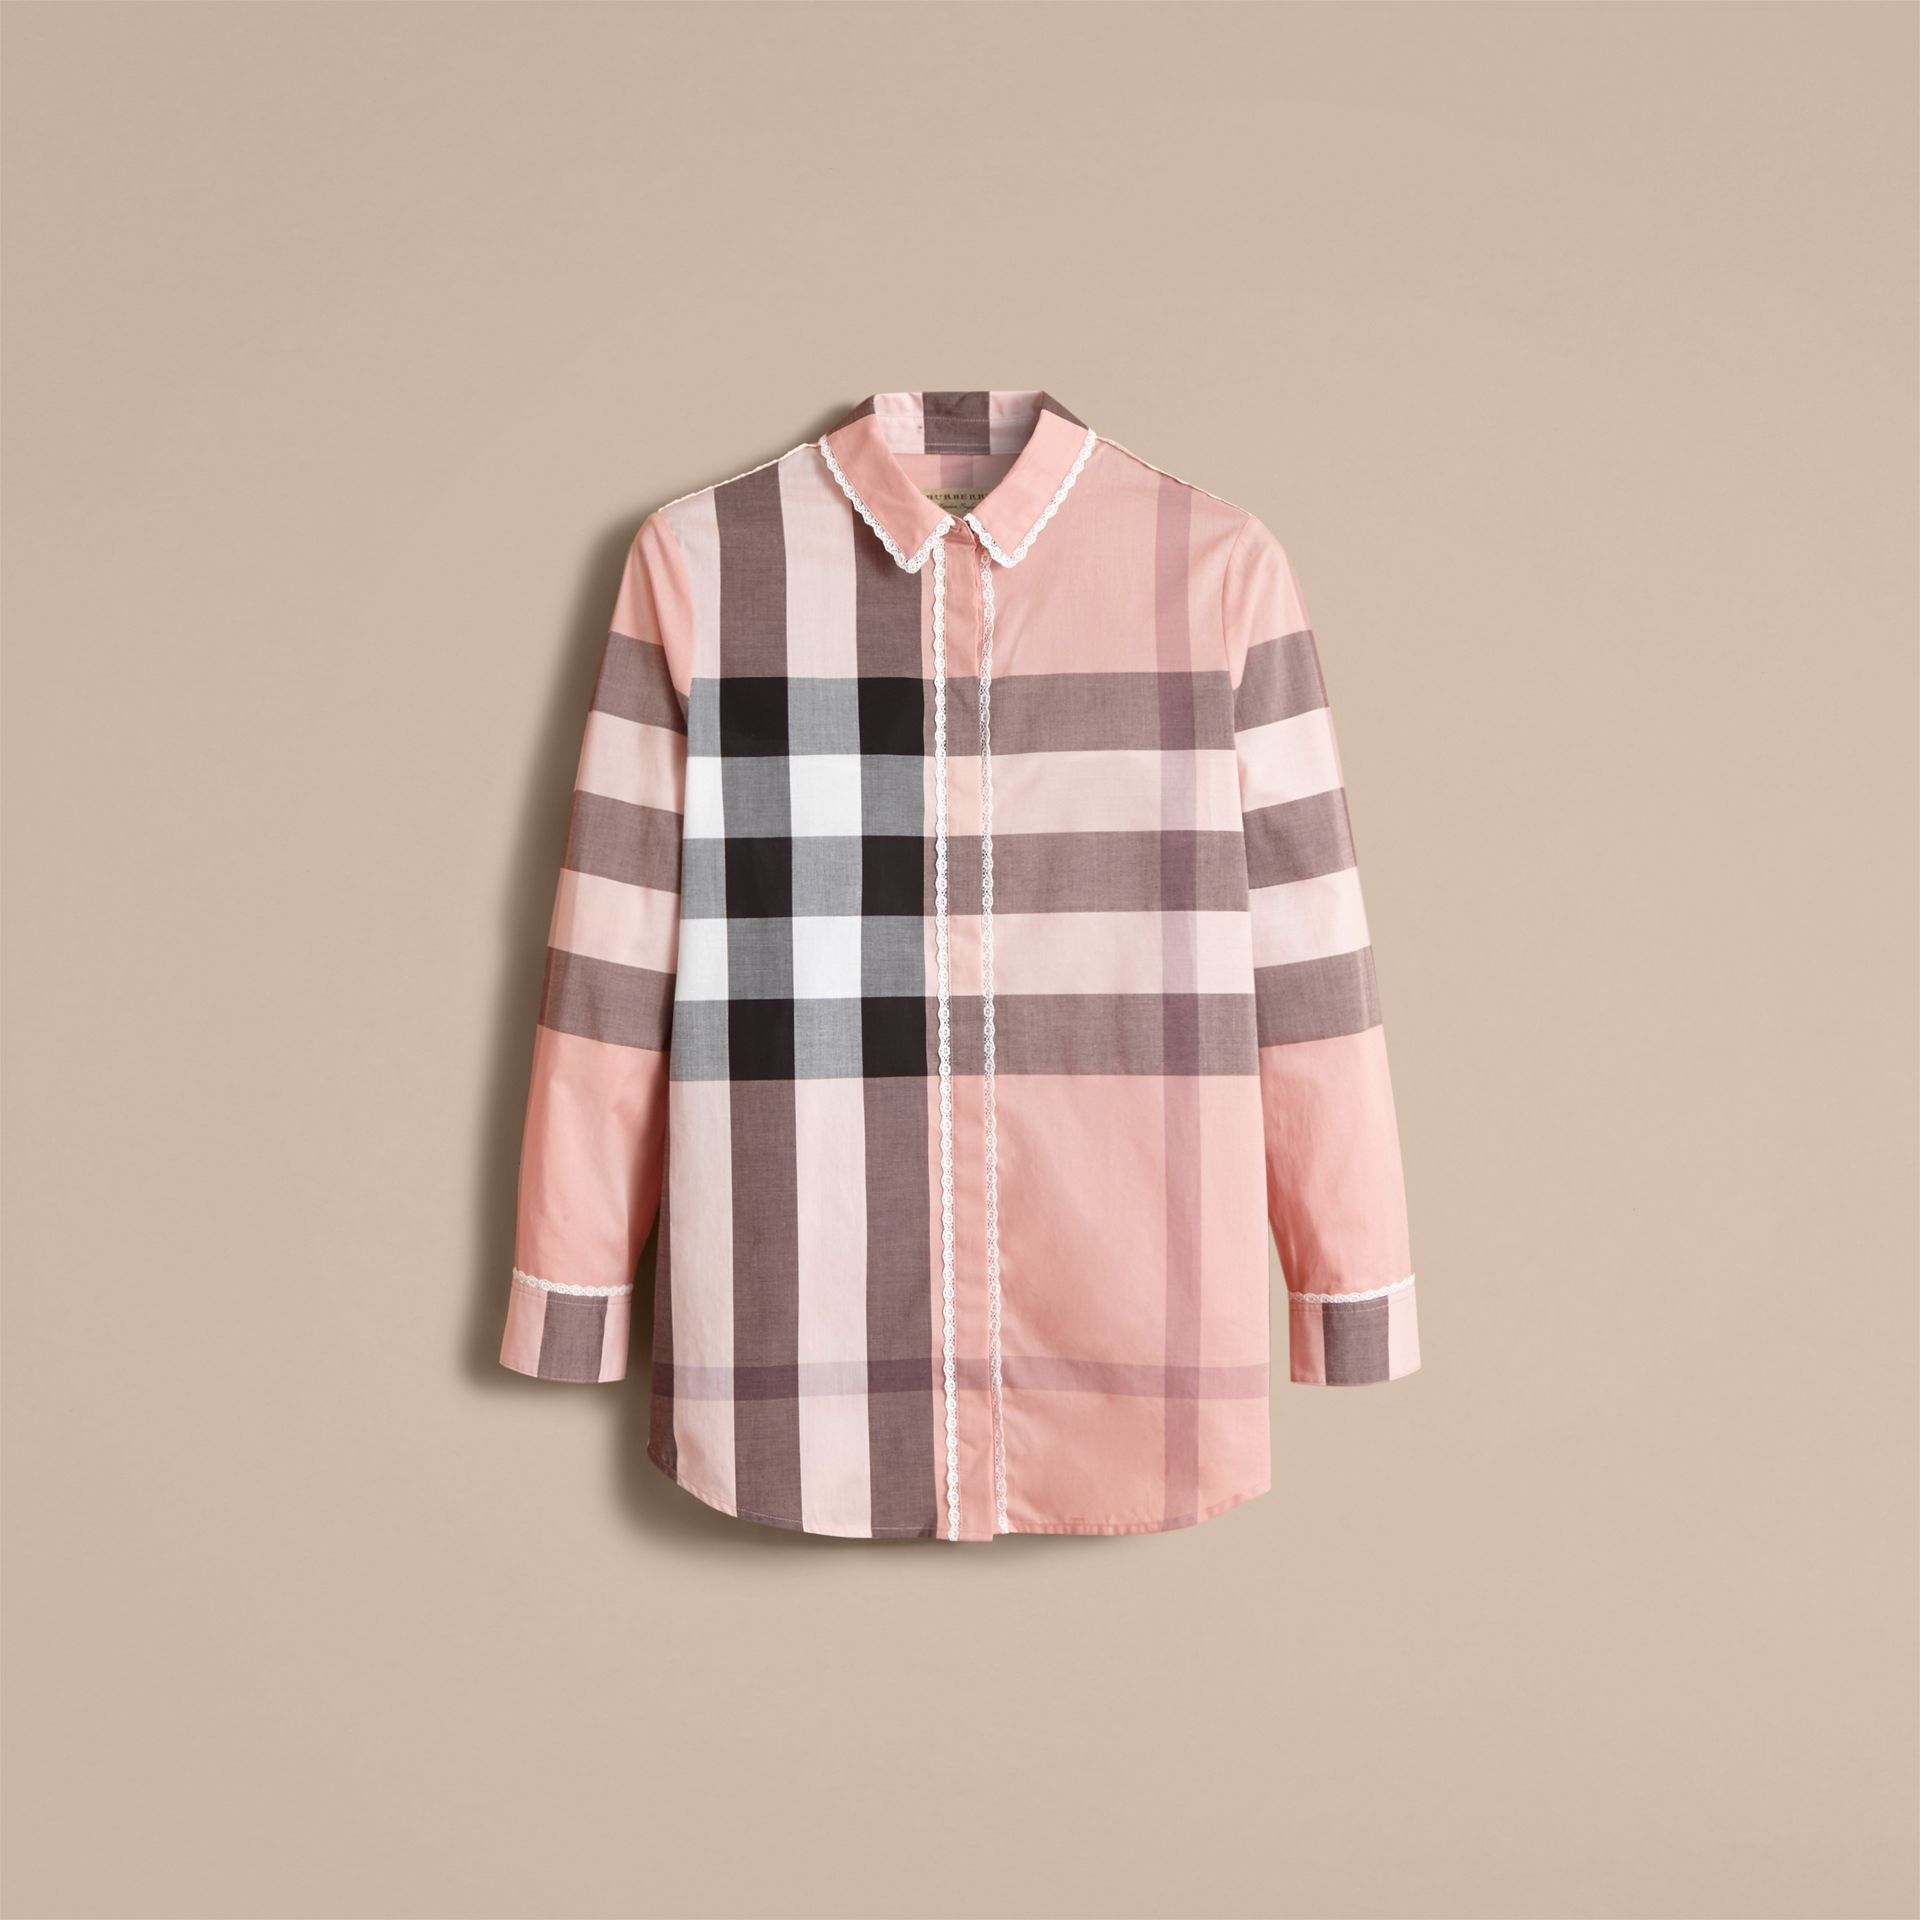 Lace Trim Check Cotton Shirt in Antique Pink - Women | Burberry - gallery image 4